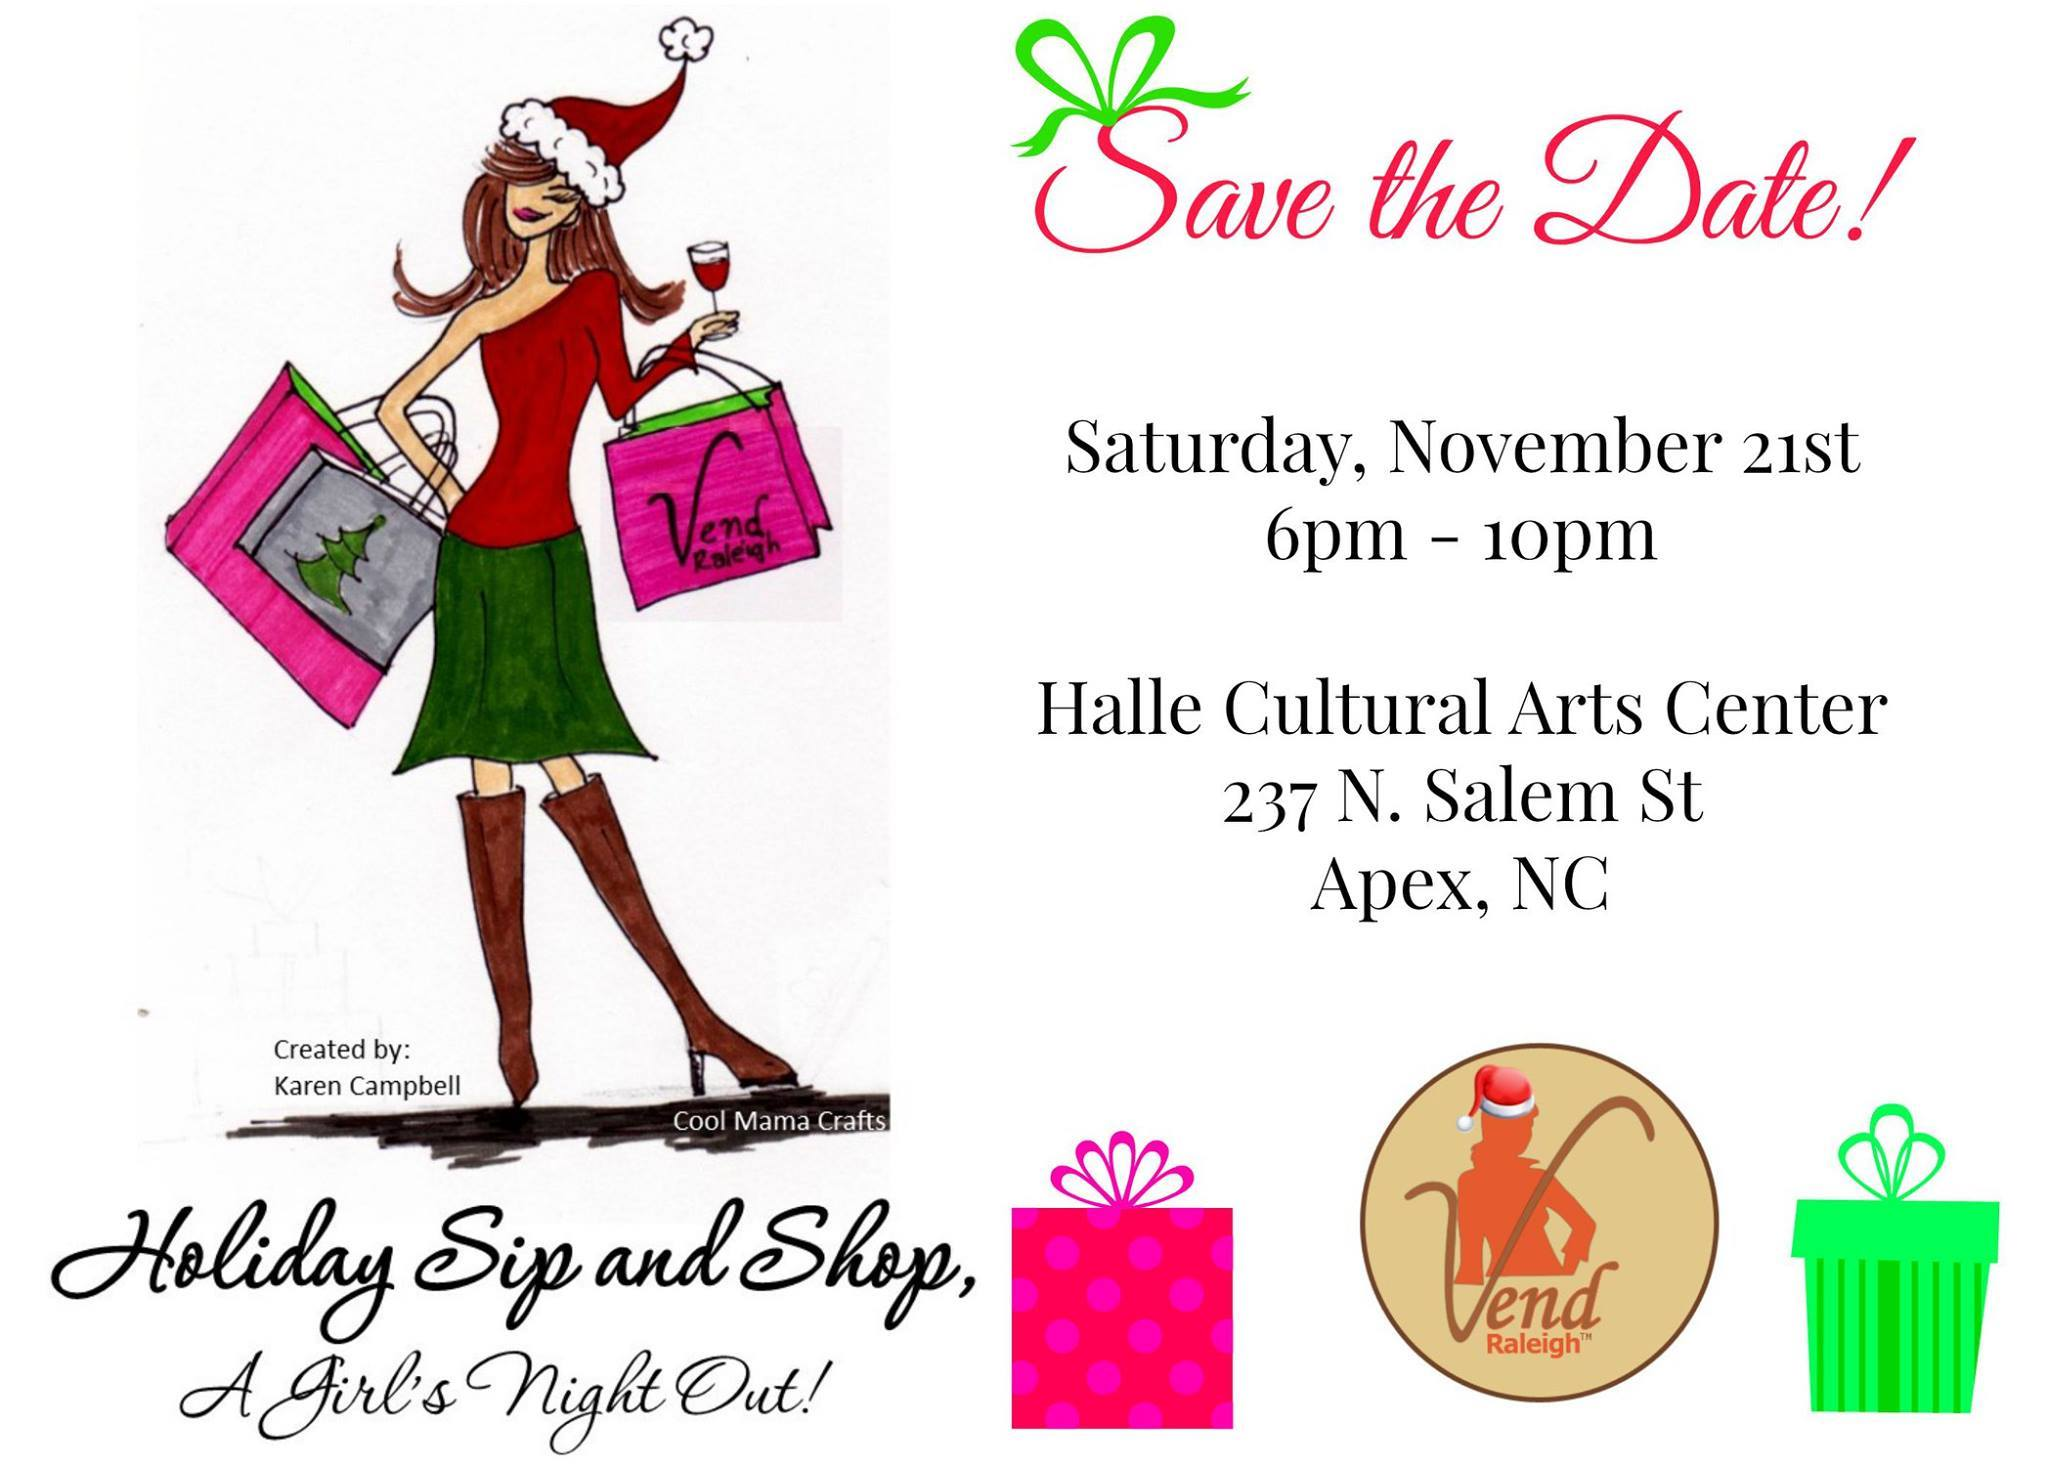 Vend Raleigh Holiday Sip and Shop -  Raleigh Christmas Show